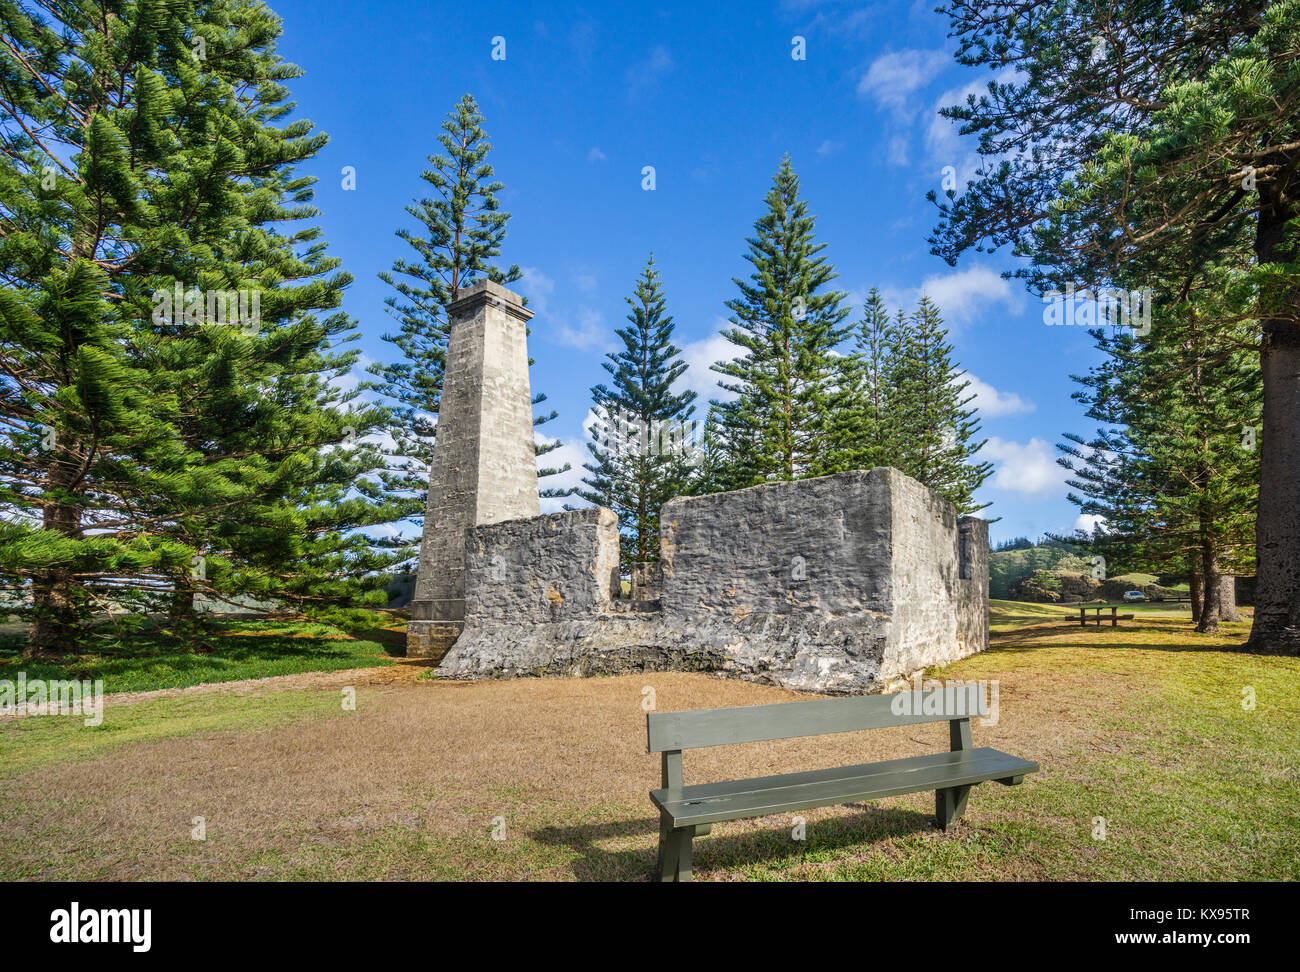 Norfolk Island, Australian external territory, Kingston, view of the ruins of the Salt House build in 1846 and emlpoyed - Stock Image